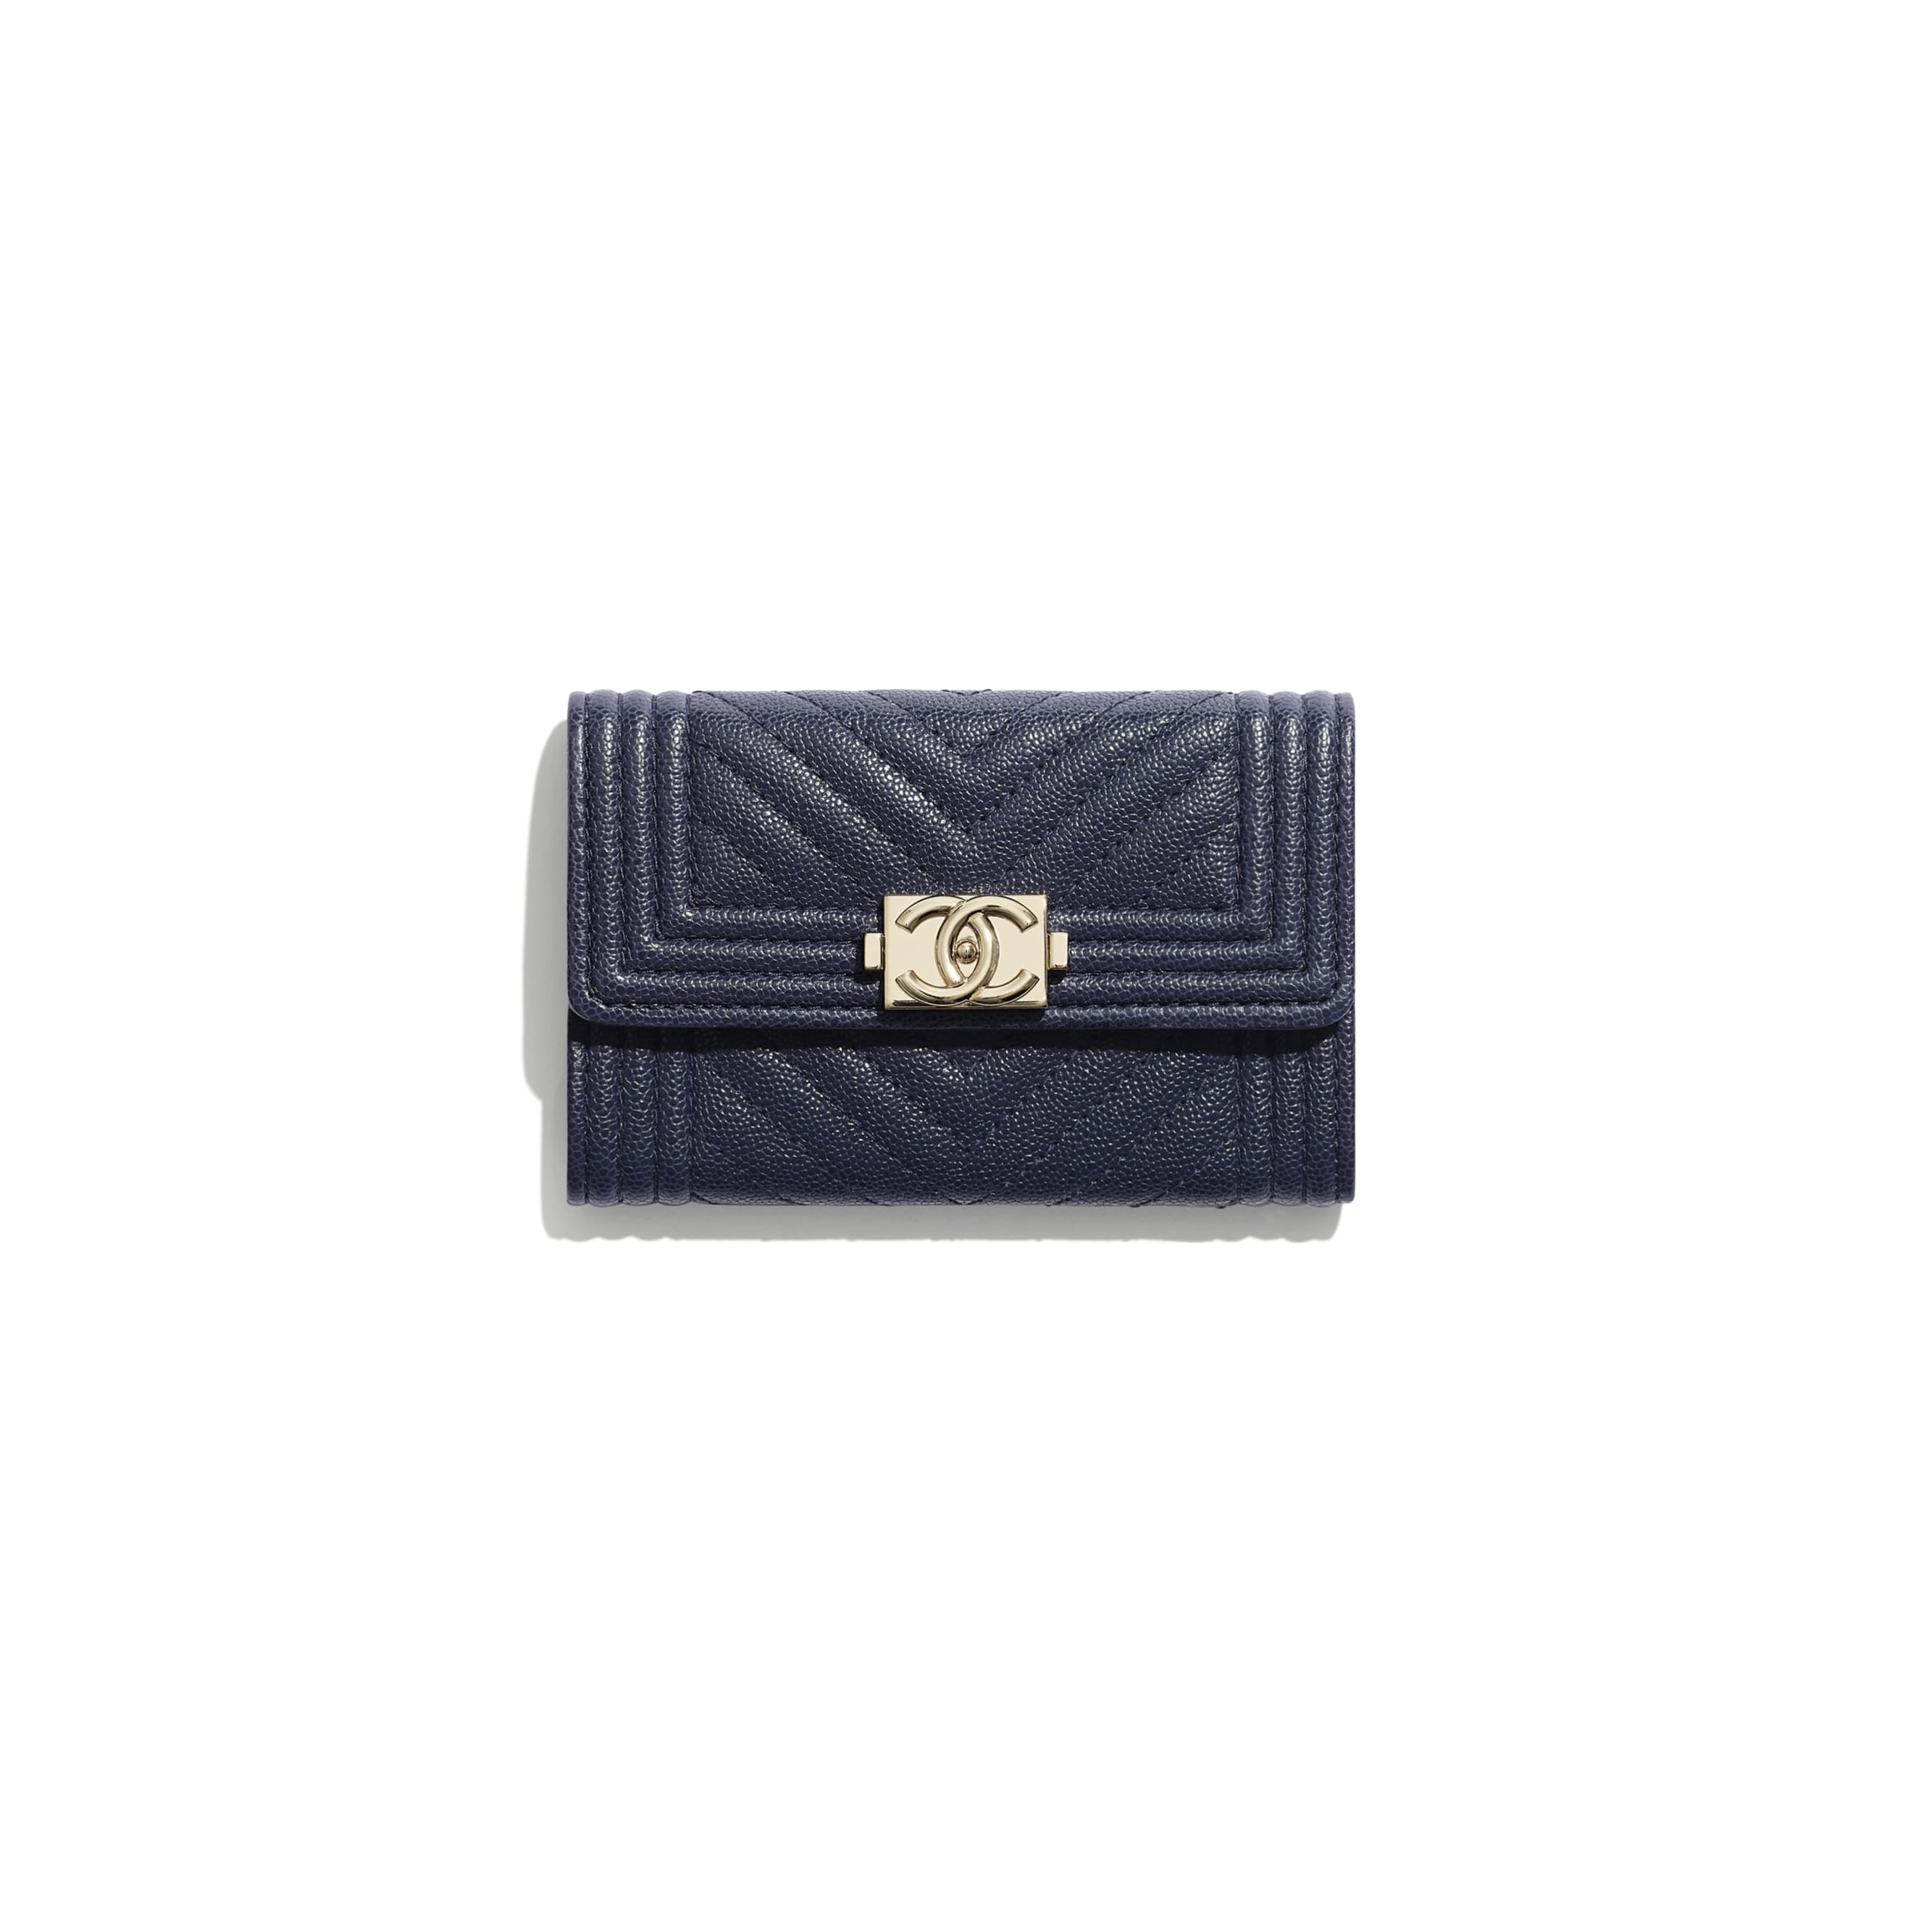 BOY CHANEL Flap Card Holder - Navy Blue - Grained Calfskin & Gold-Tone Metal - Default view - see standard sized version